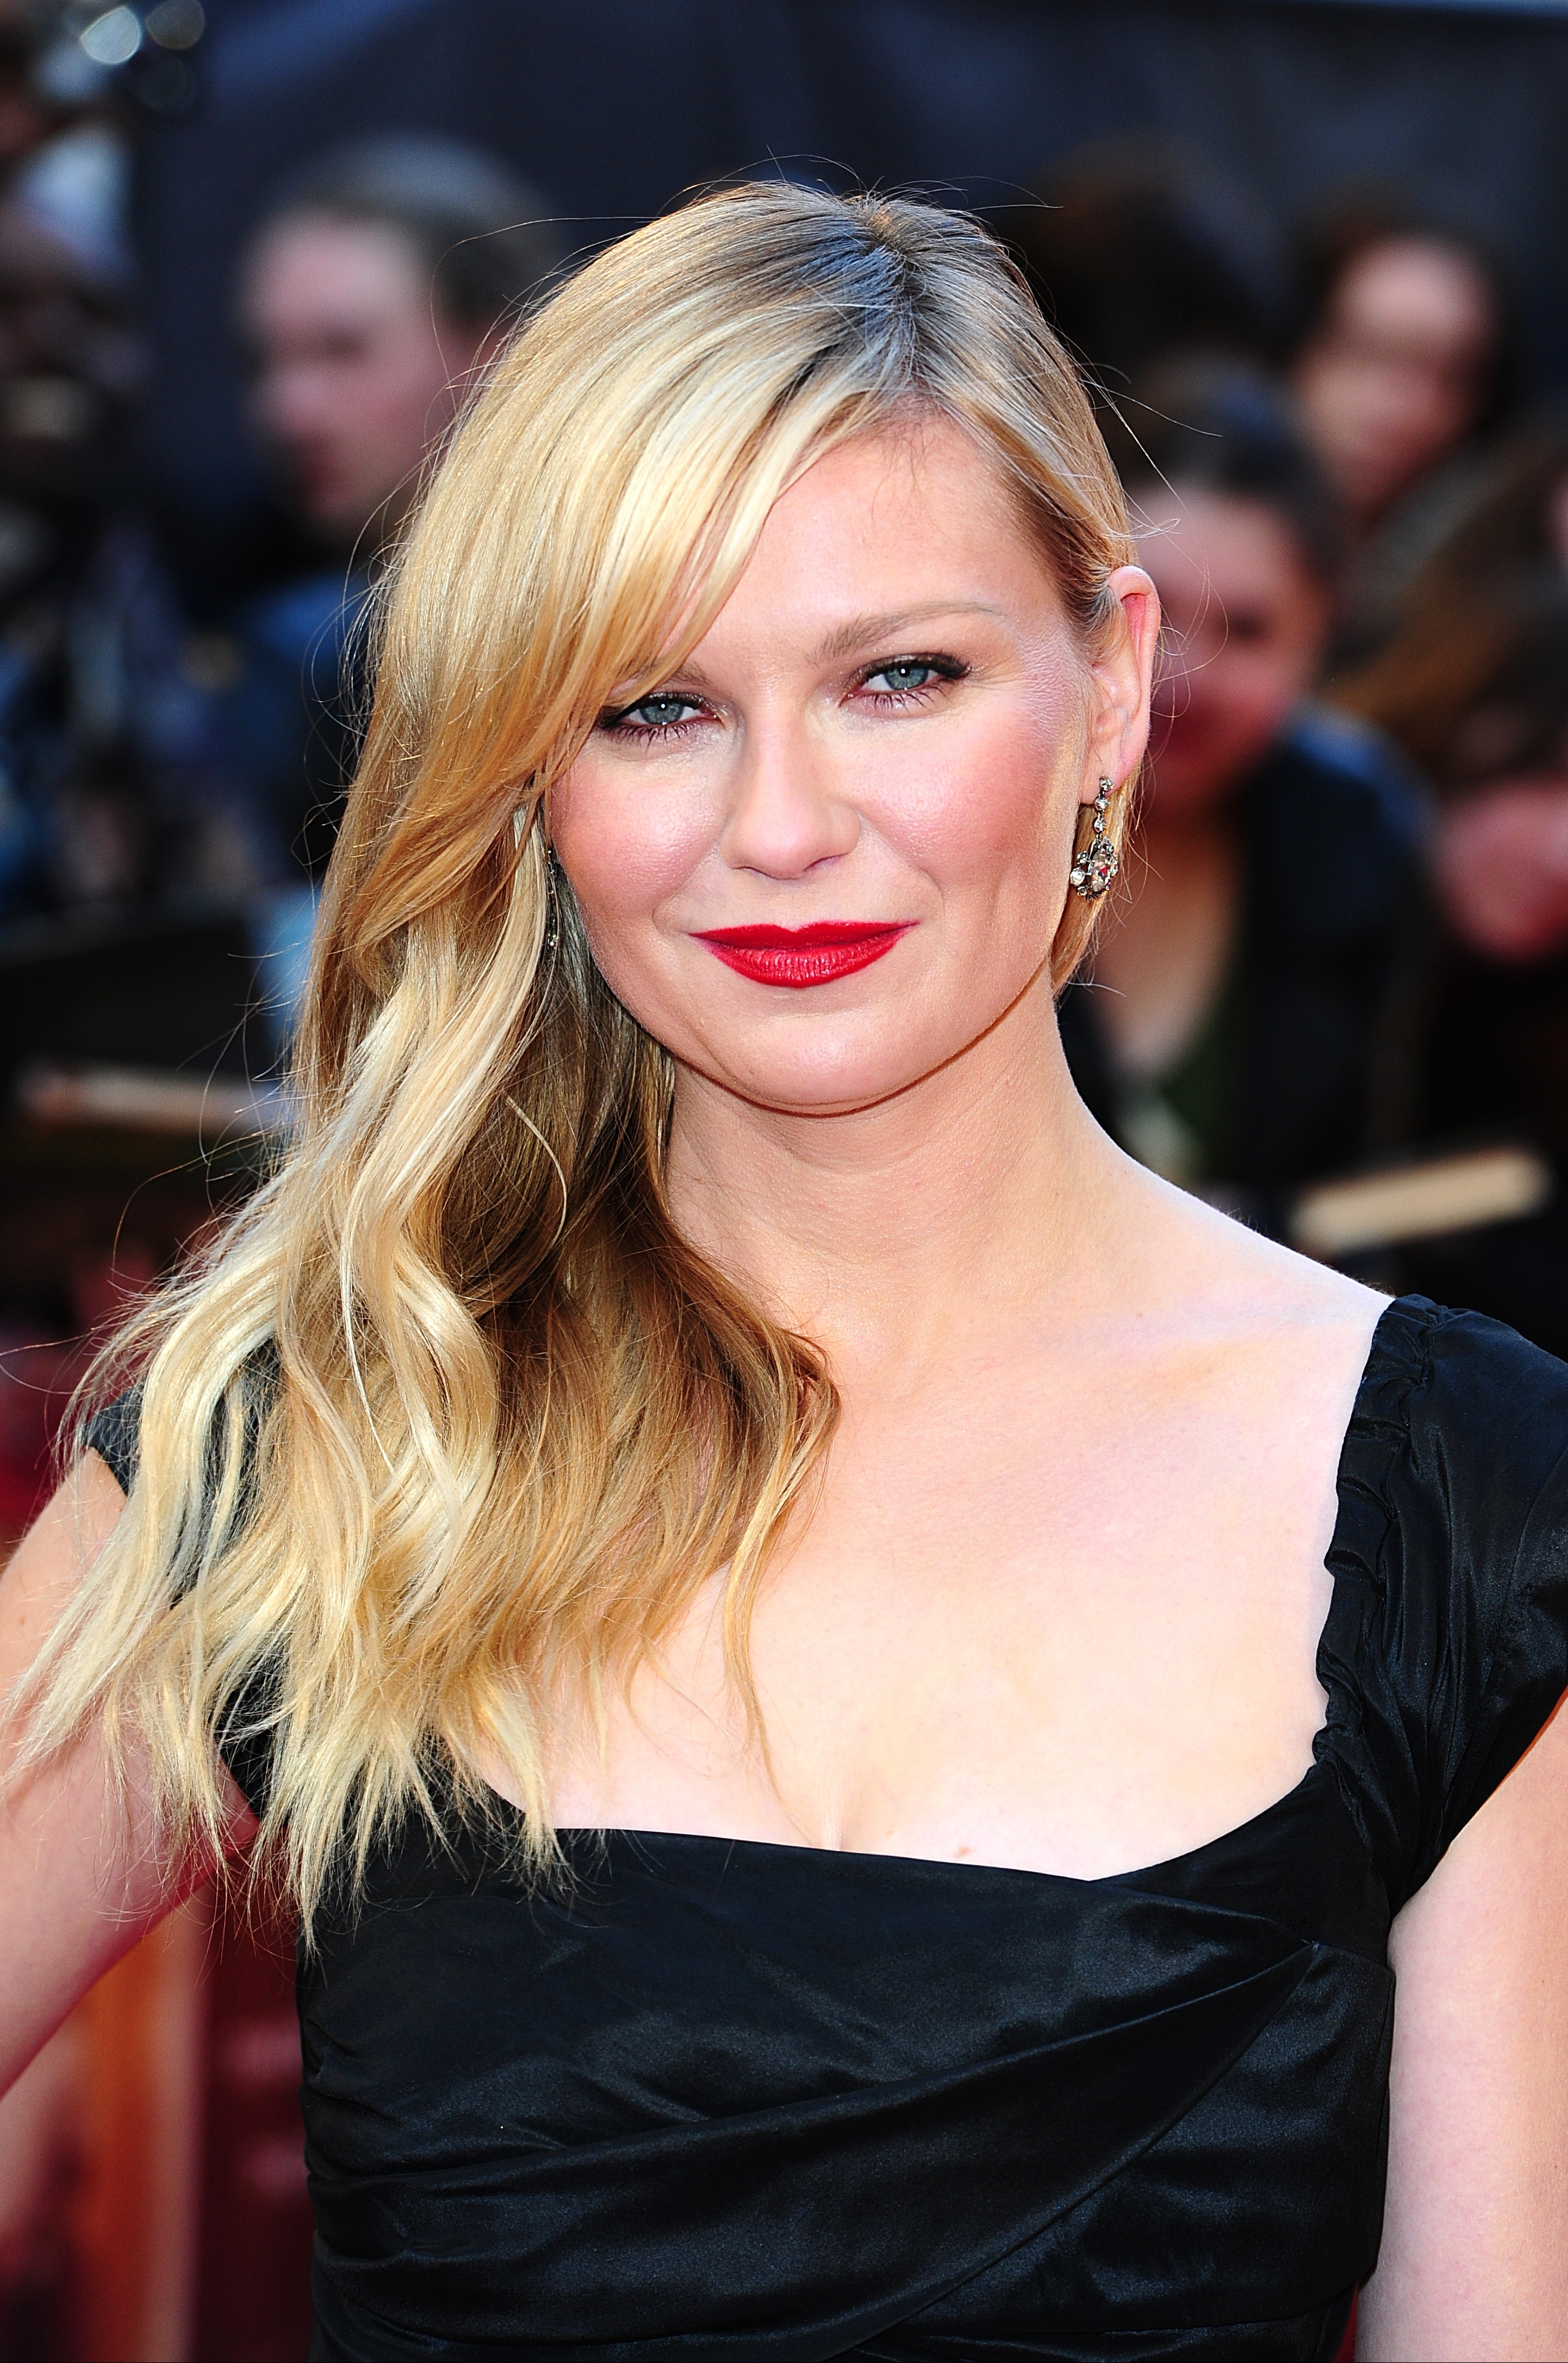 Kirsten Dunst on the red carpet